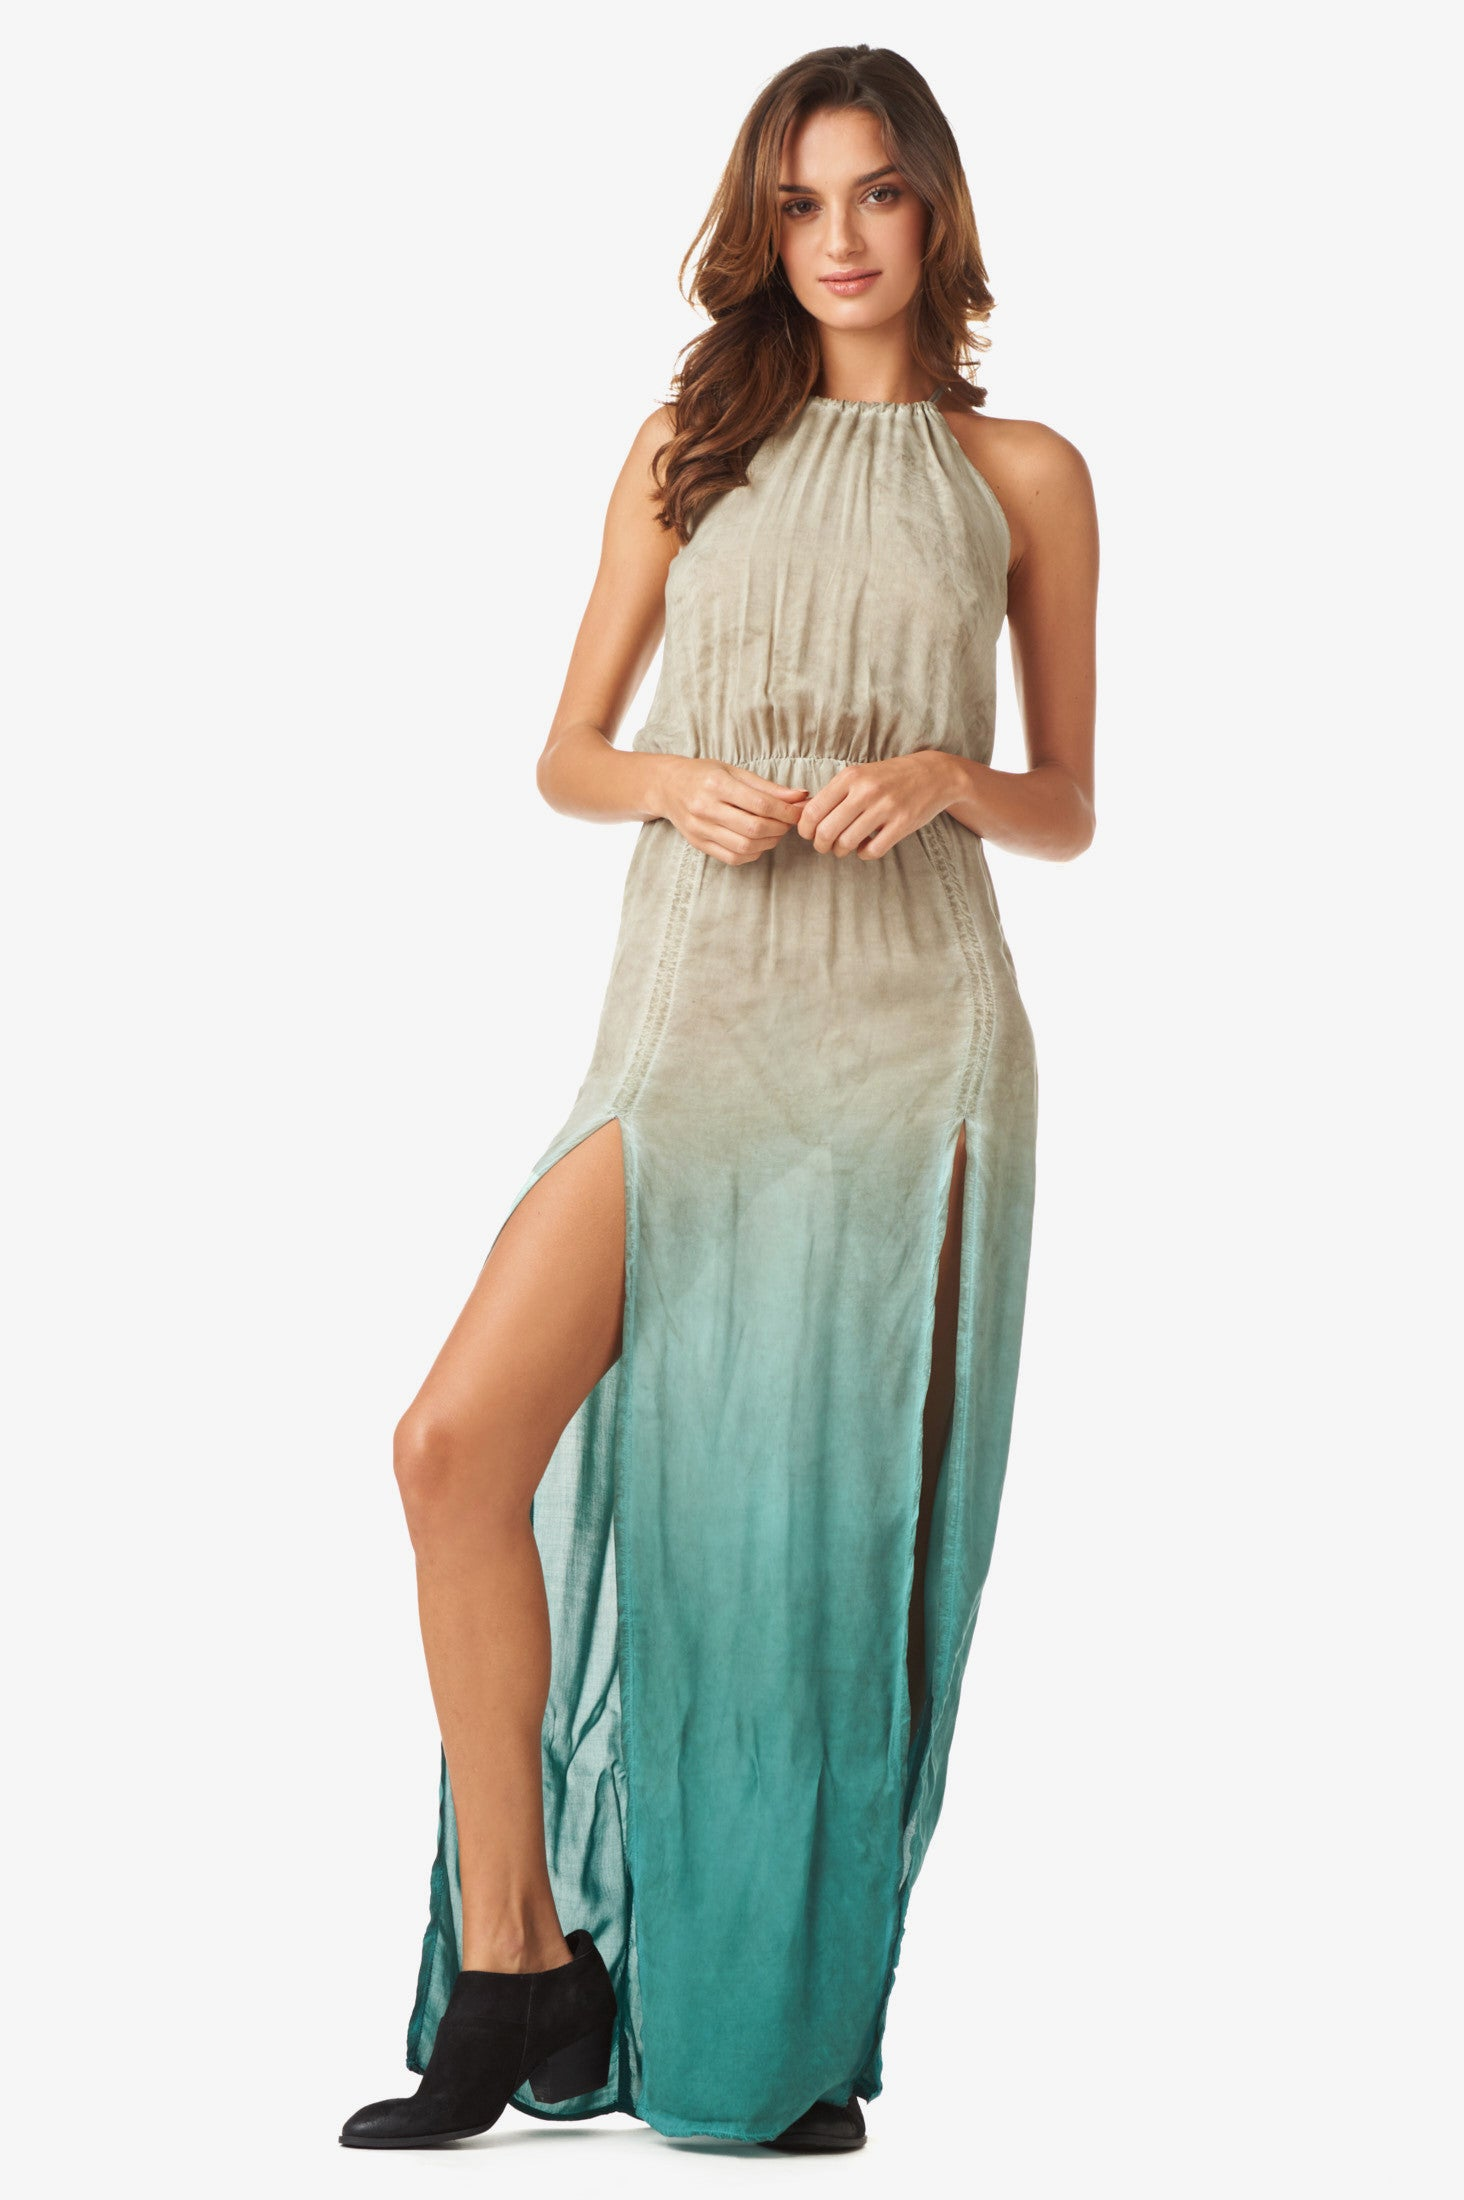 2 Slit Halter Dress in Capri Ombre